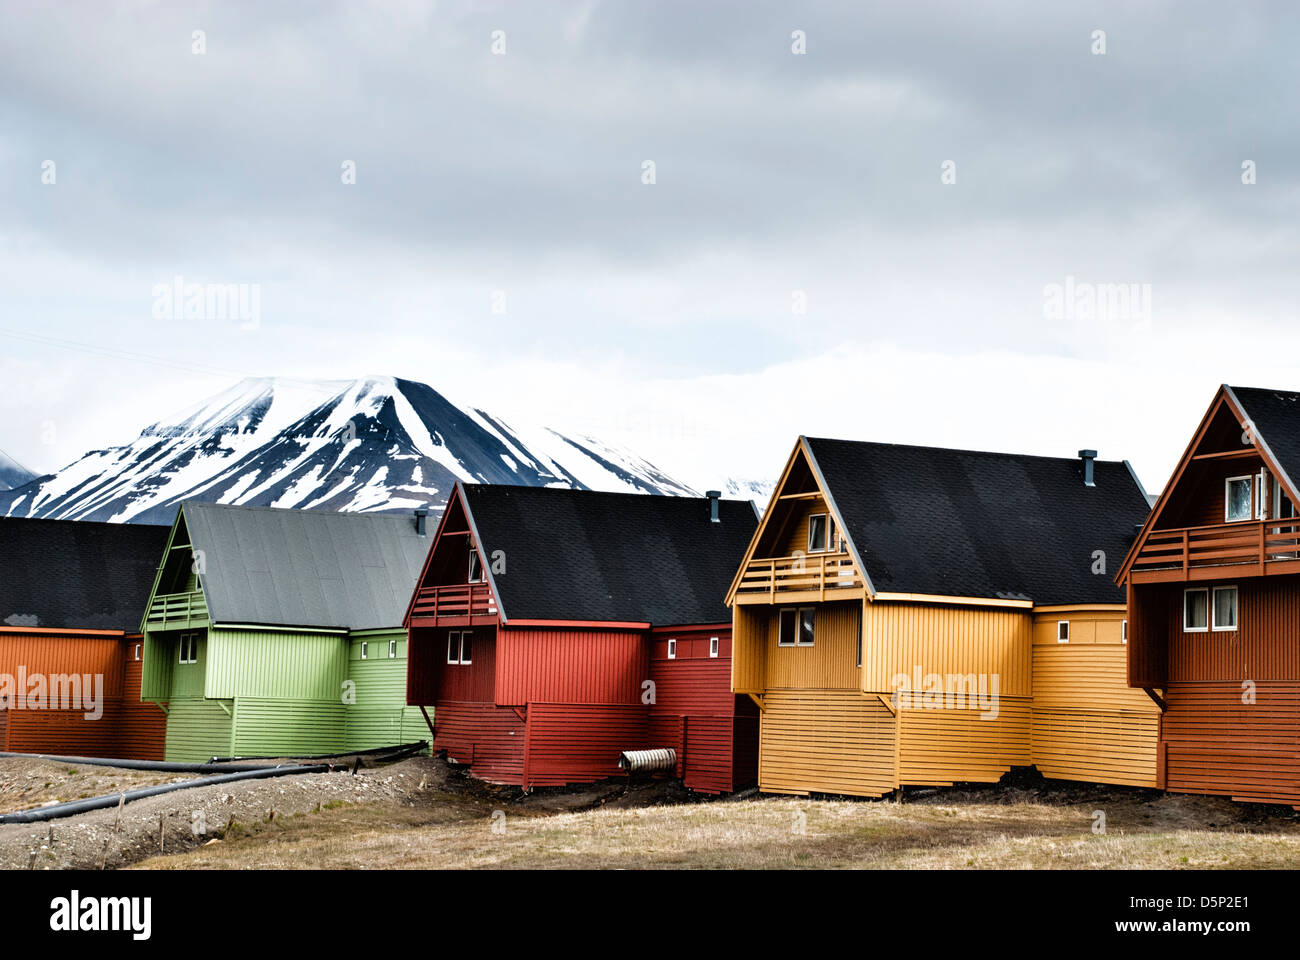 Colorful houses in the town of Longyearbyen on Spitsbergen, Svalbard Archipelago, Norway - Stock Image